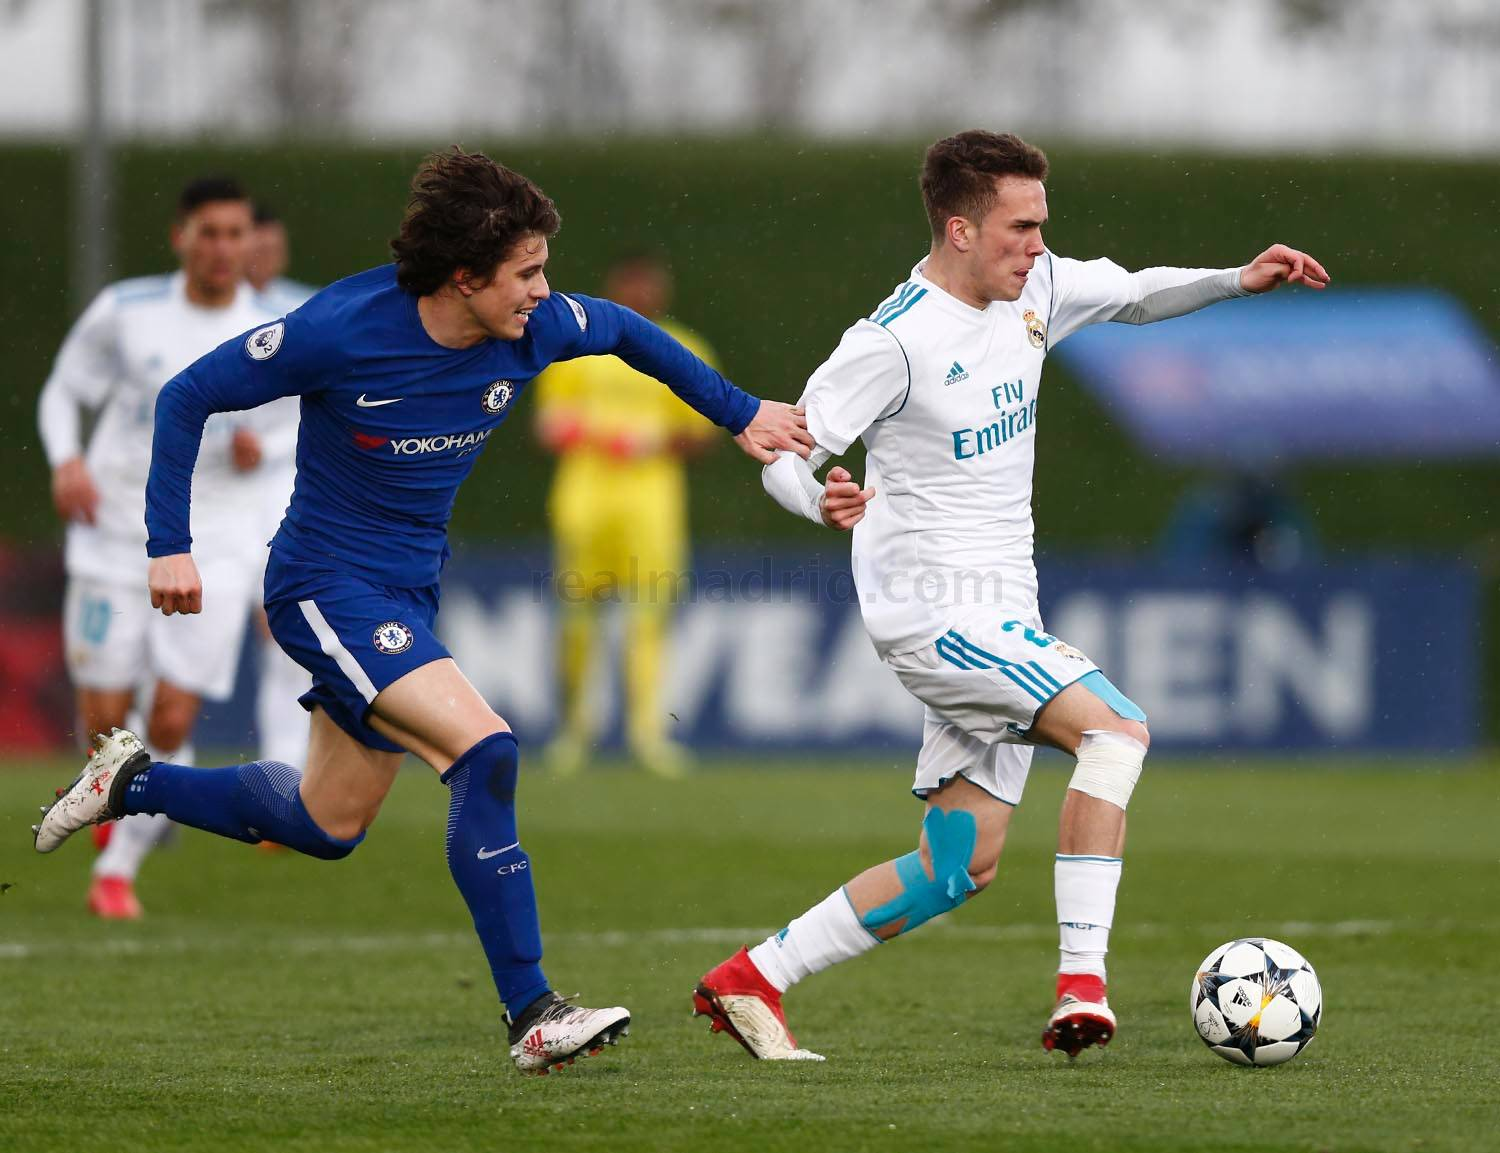 Real Madrid - Juvenil A - Chelsea - 14-03-2018